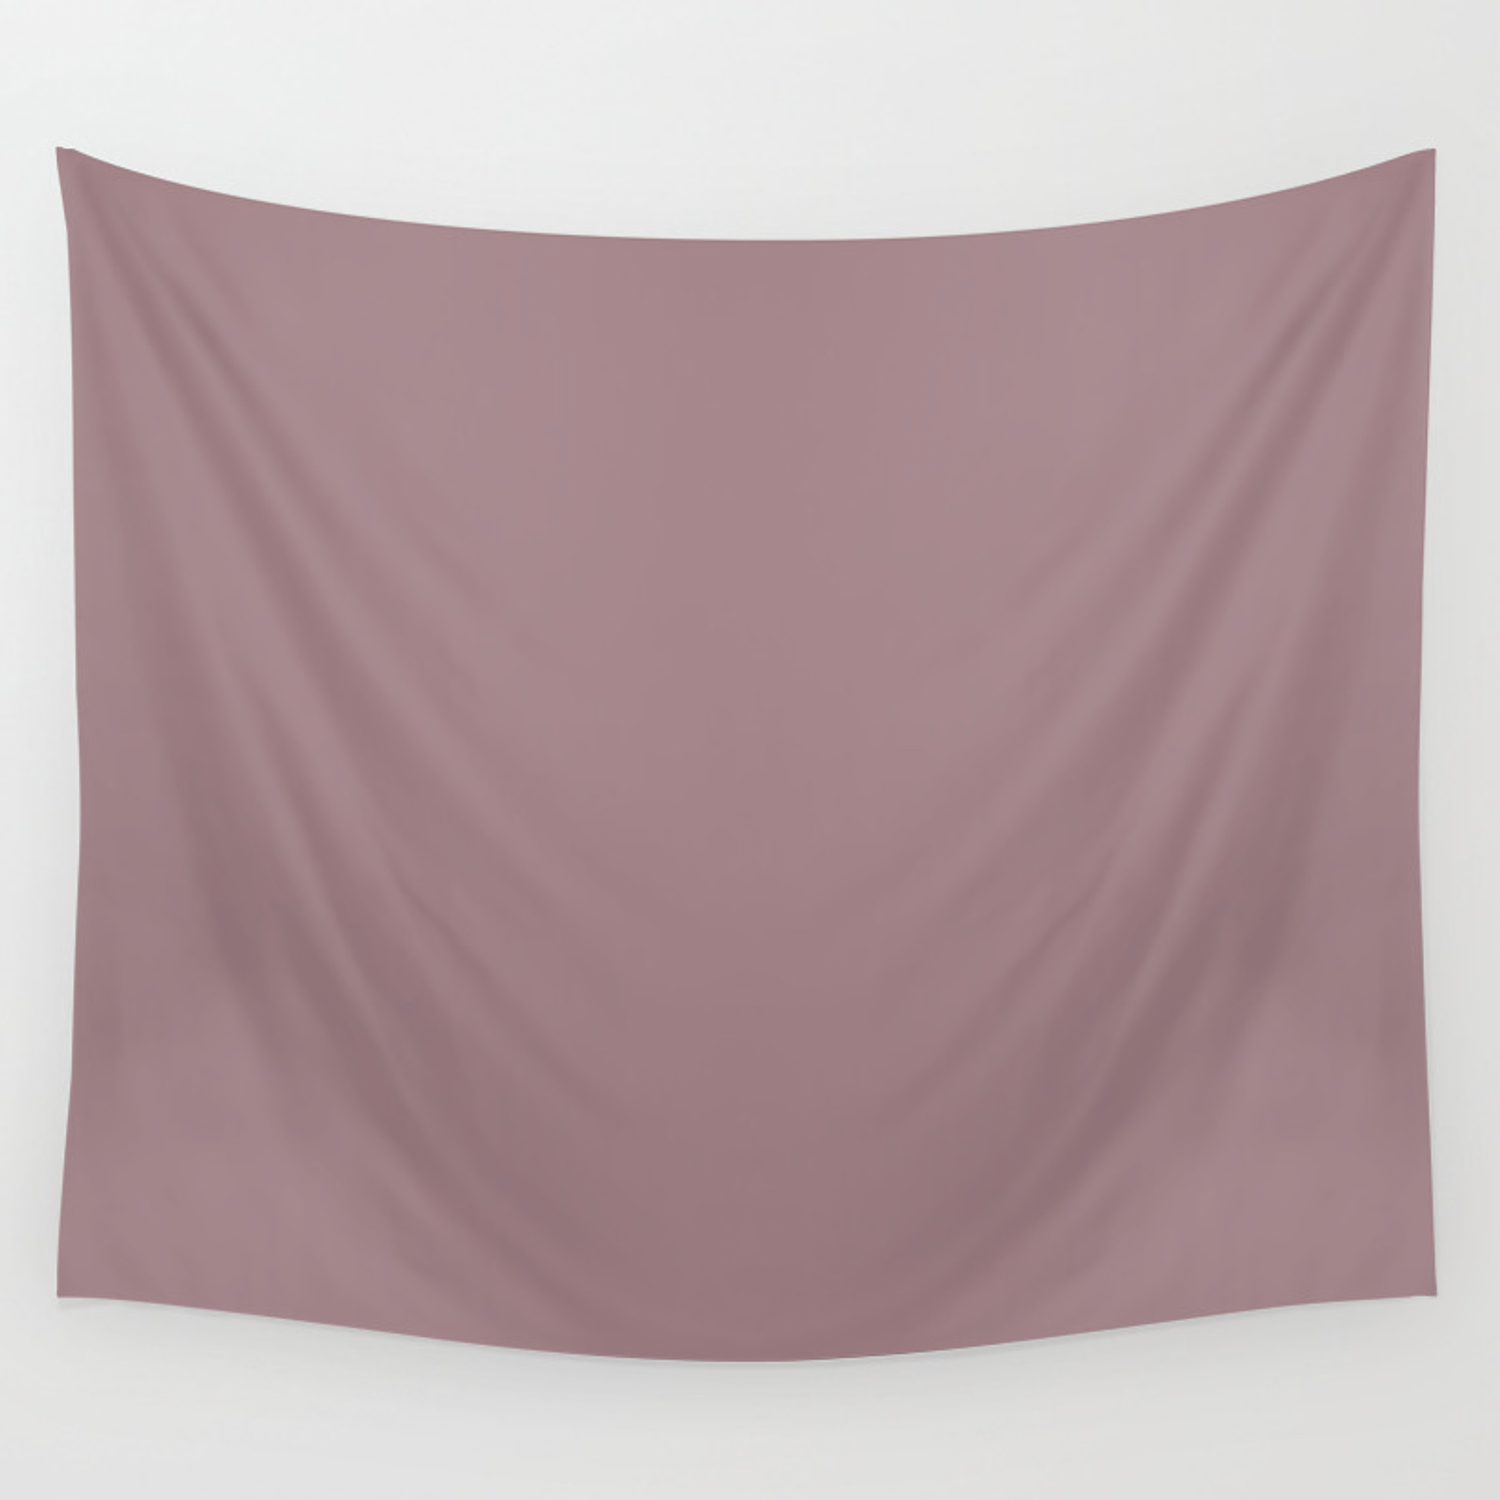 Light Purple Room Decor, Trendy Poster, Modern Decor, Office Decor, Gift,  Bedroom Print, Minimalist Wall Tapestry